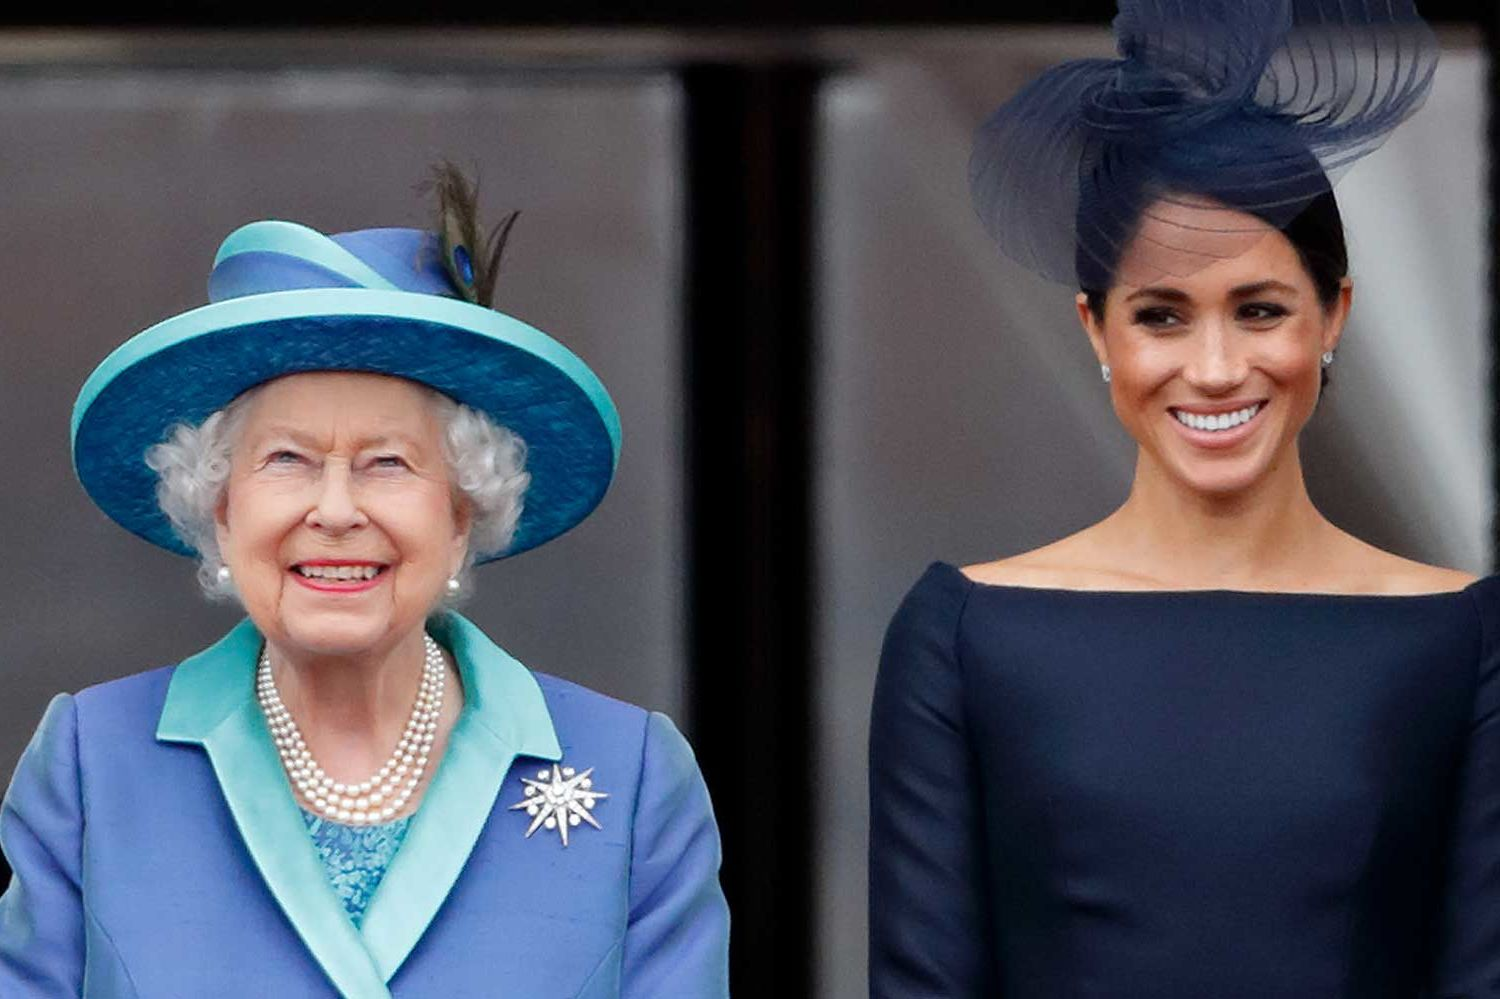 The Queen Just Invited Meghan Markle's Mother to Spend Christmas With the Royal Family